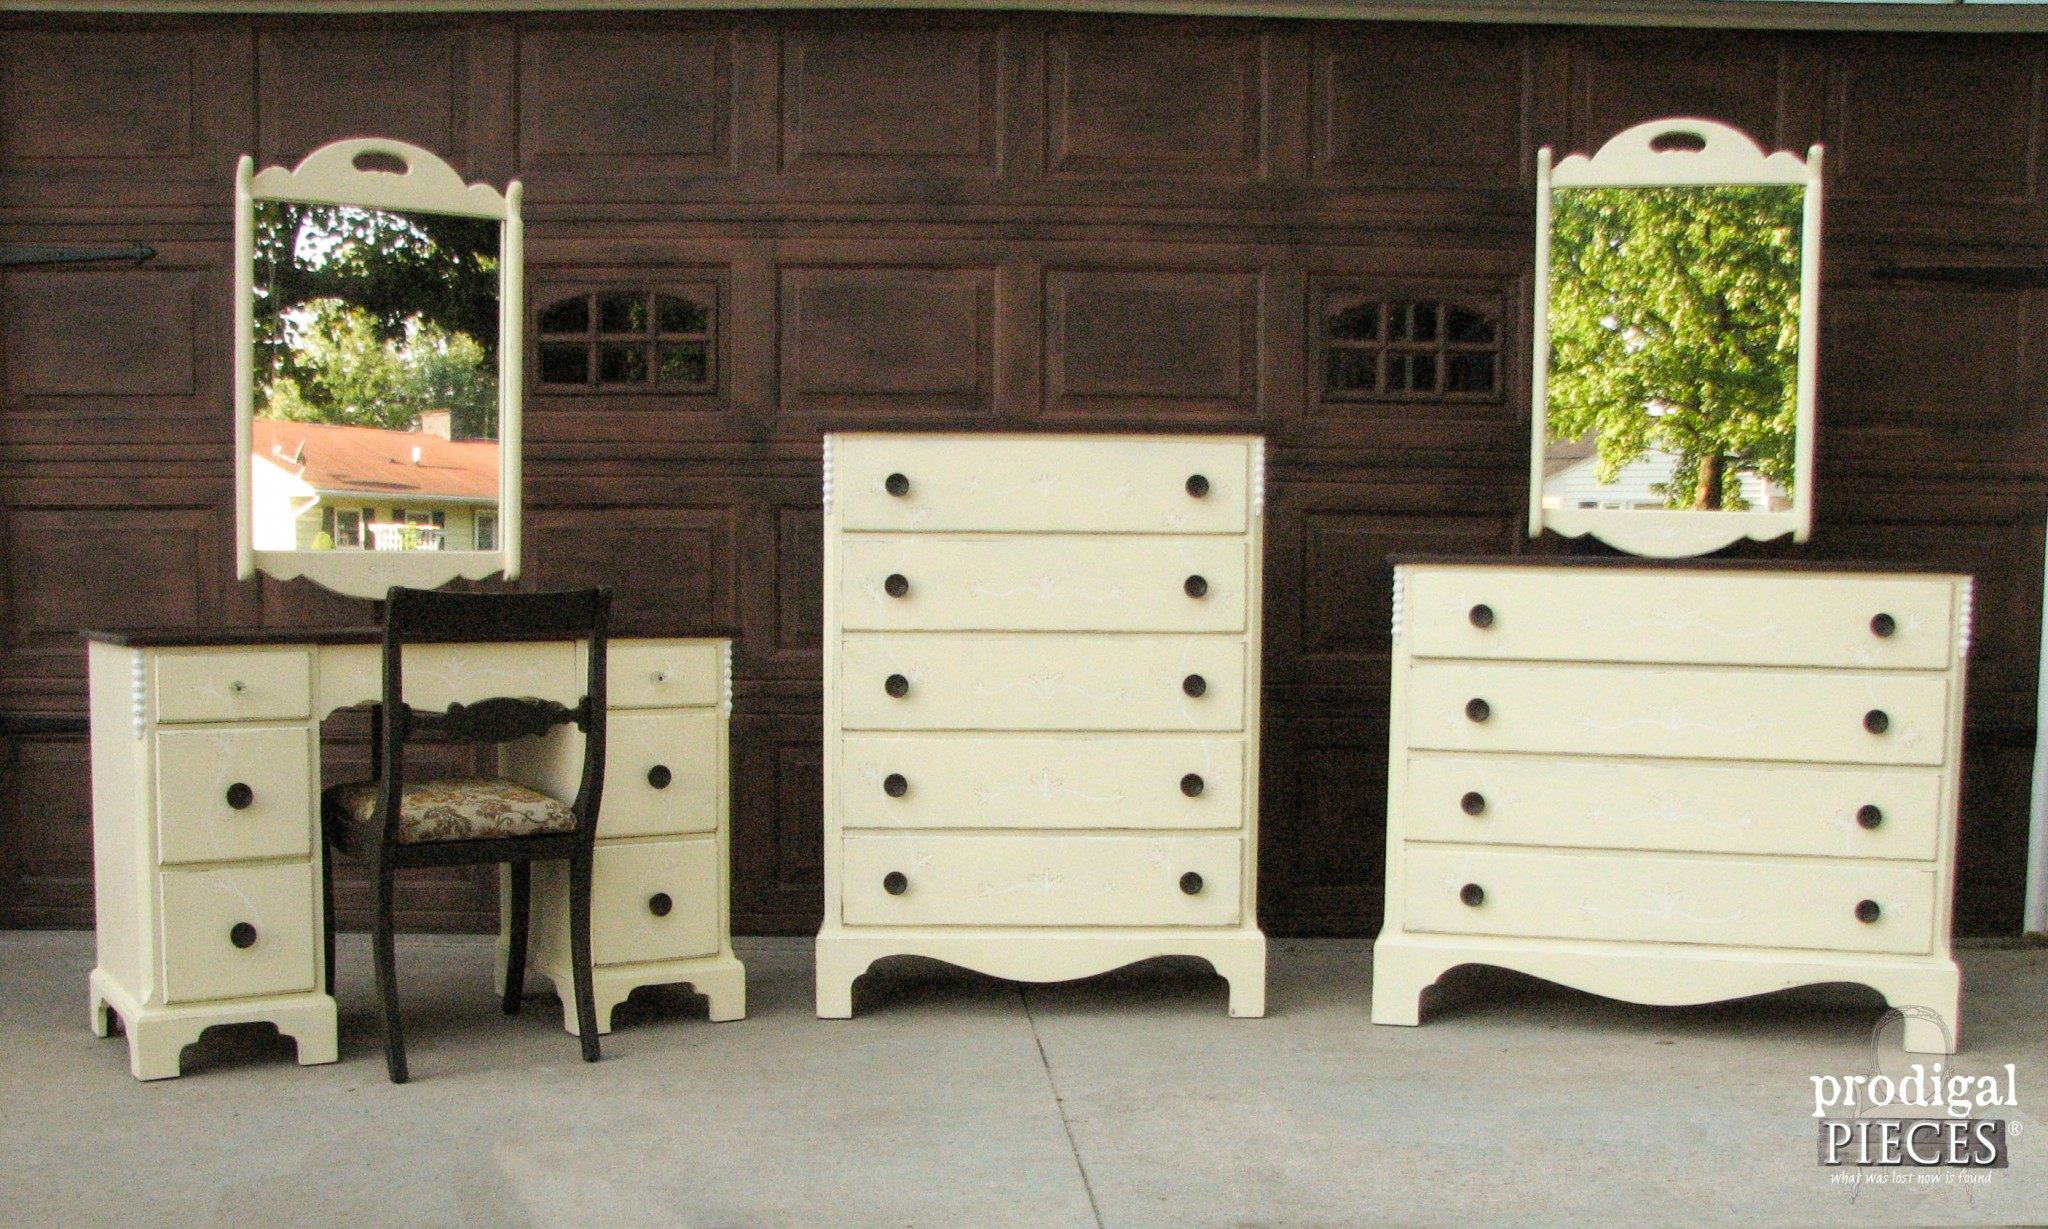 vintage bedroom sets. Vintage Bedroom Set with Primitive Makeover by Prodigal Pieces  www prodigalpieces com A Reunion